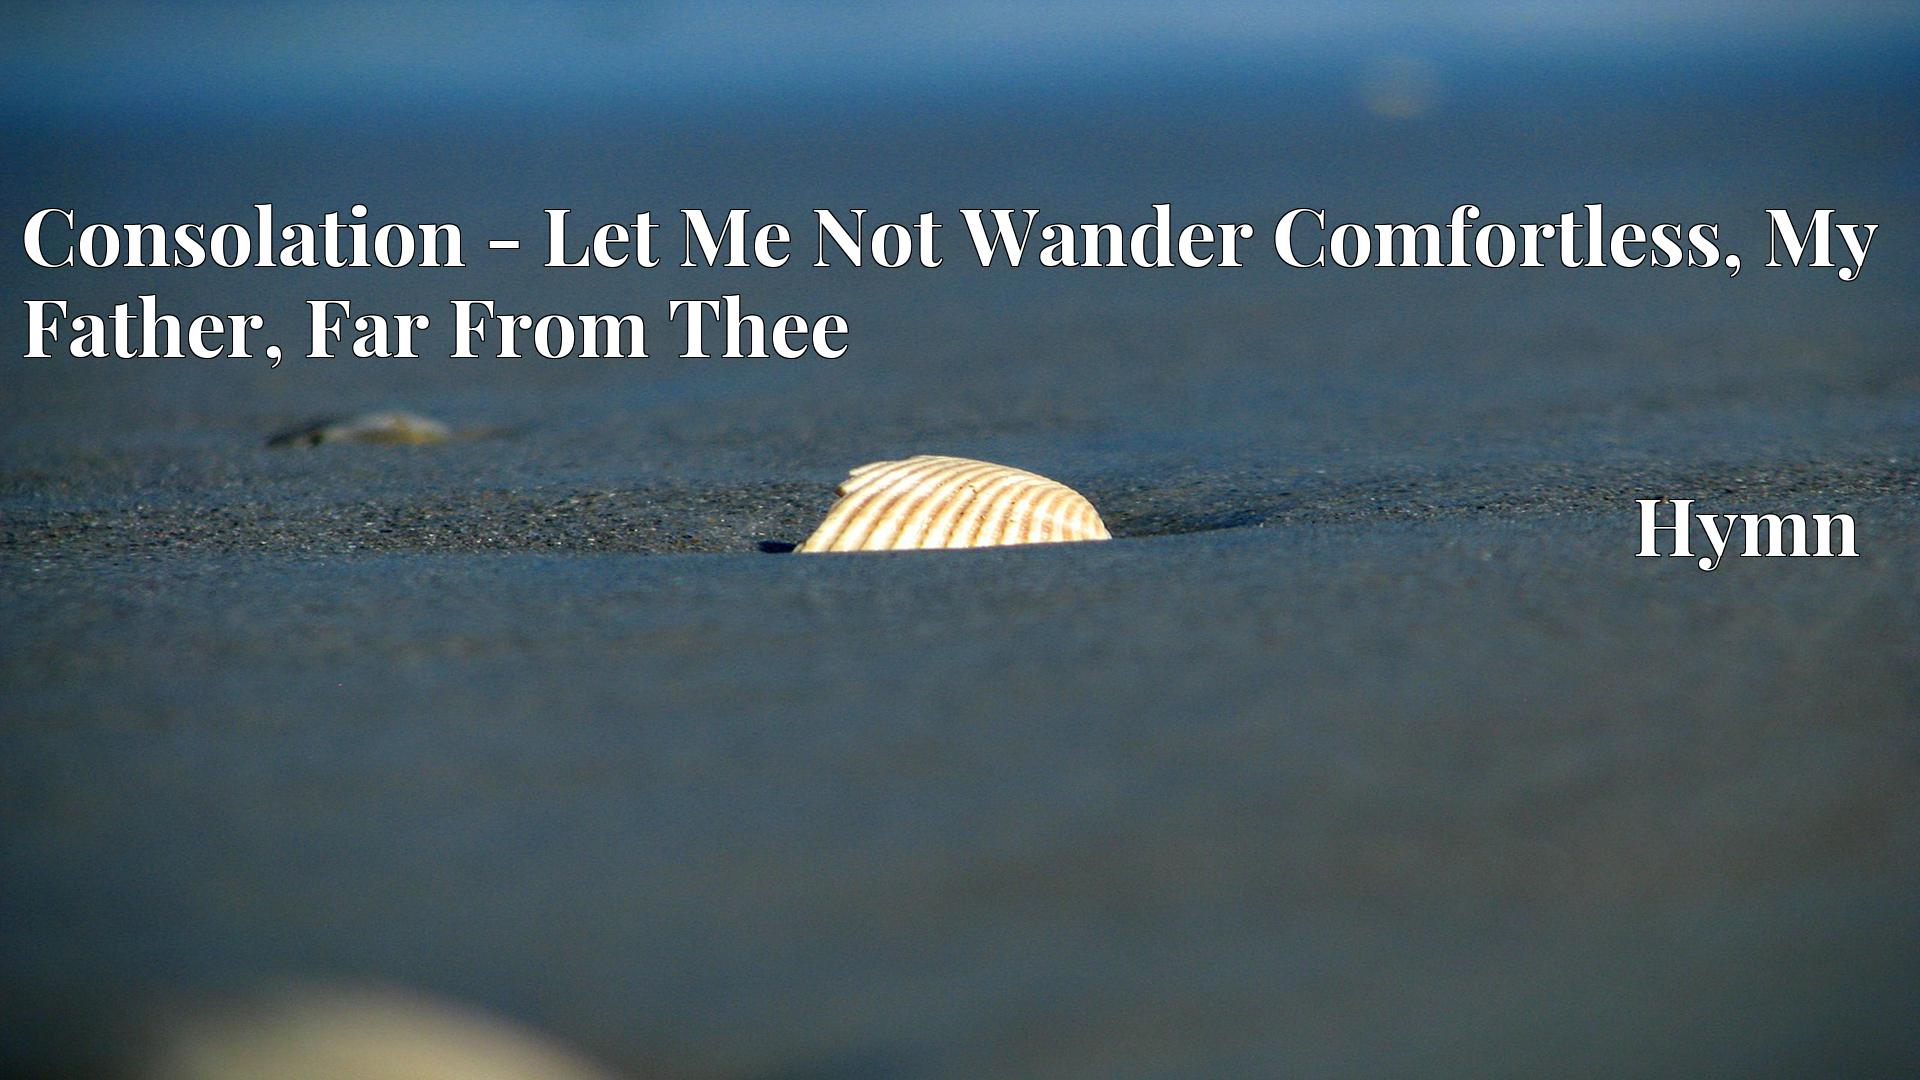 Consolation - Let Me Not Wander Comfortless, My Father, Far From Thee - Hymn